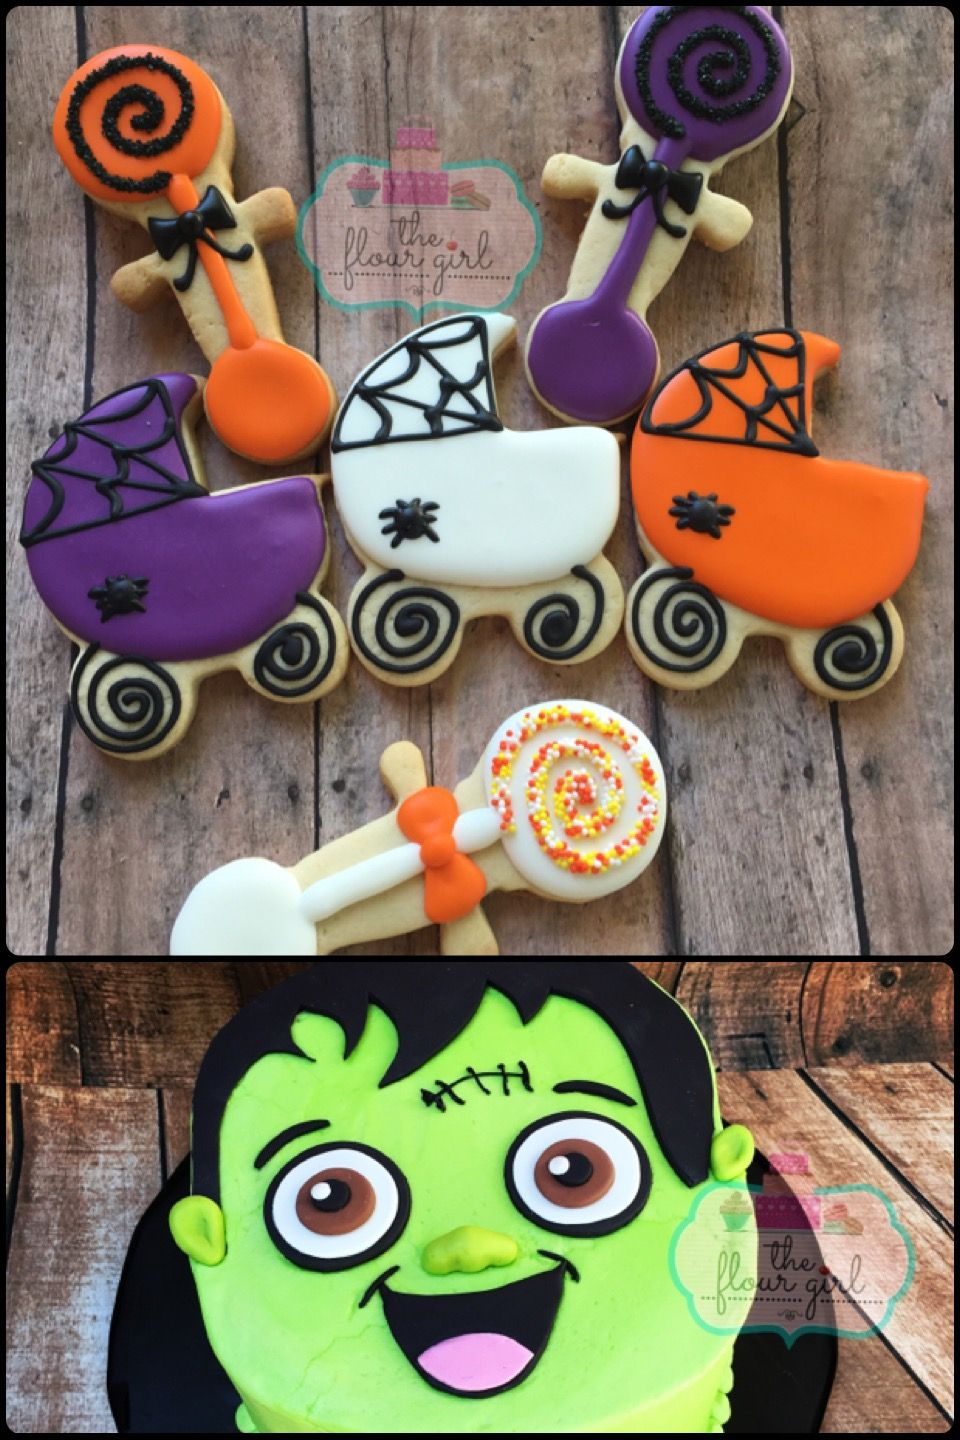 Halloween Themed Baby Shower Cookies.Halloween Baby Shower Frankenstein Cake And Cookies The Flour Girl